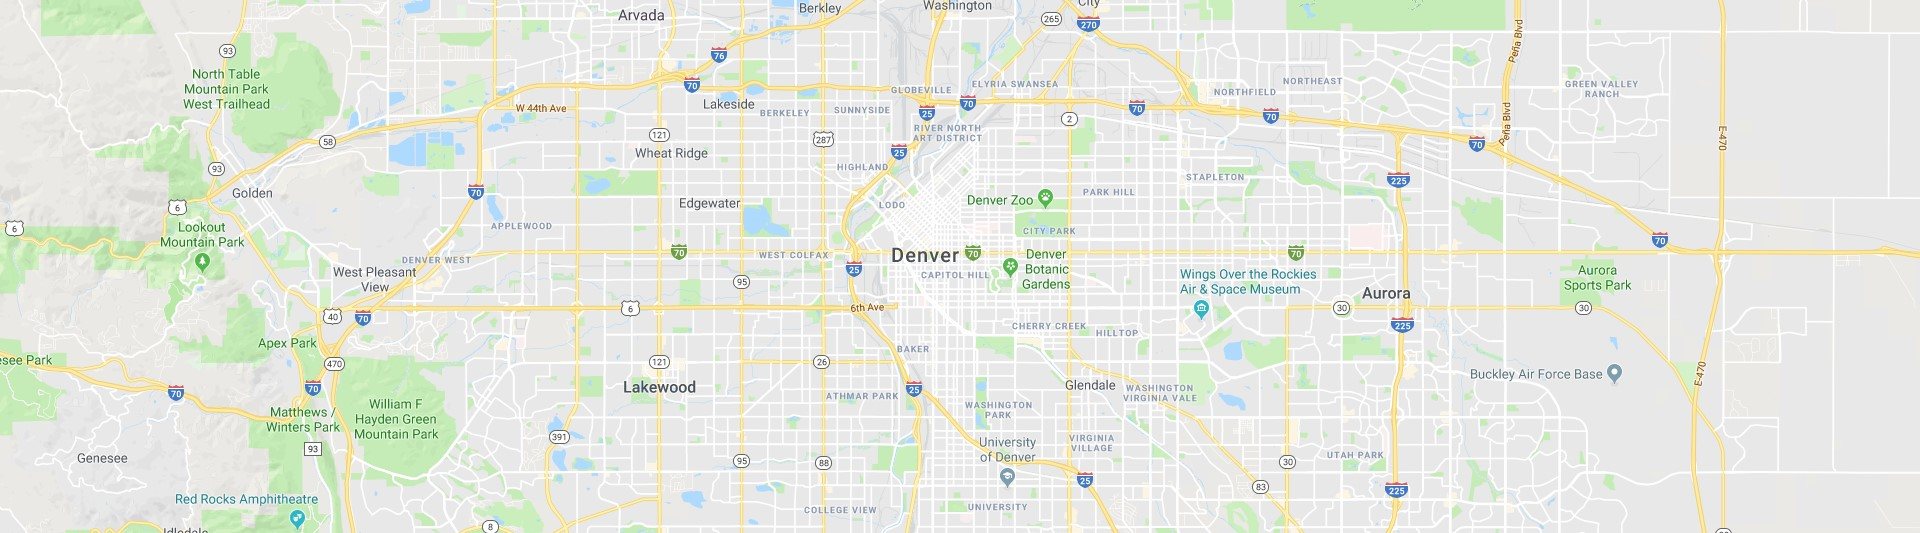 biohazardous waste removal denver area colorado